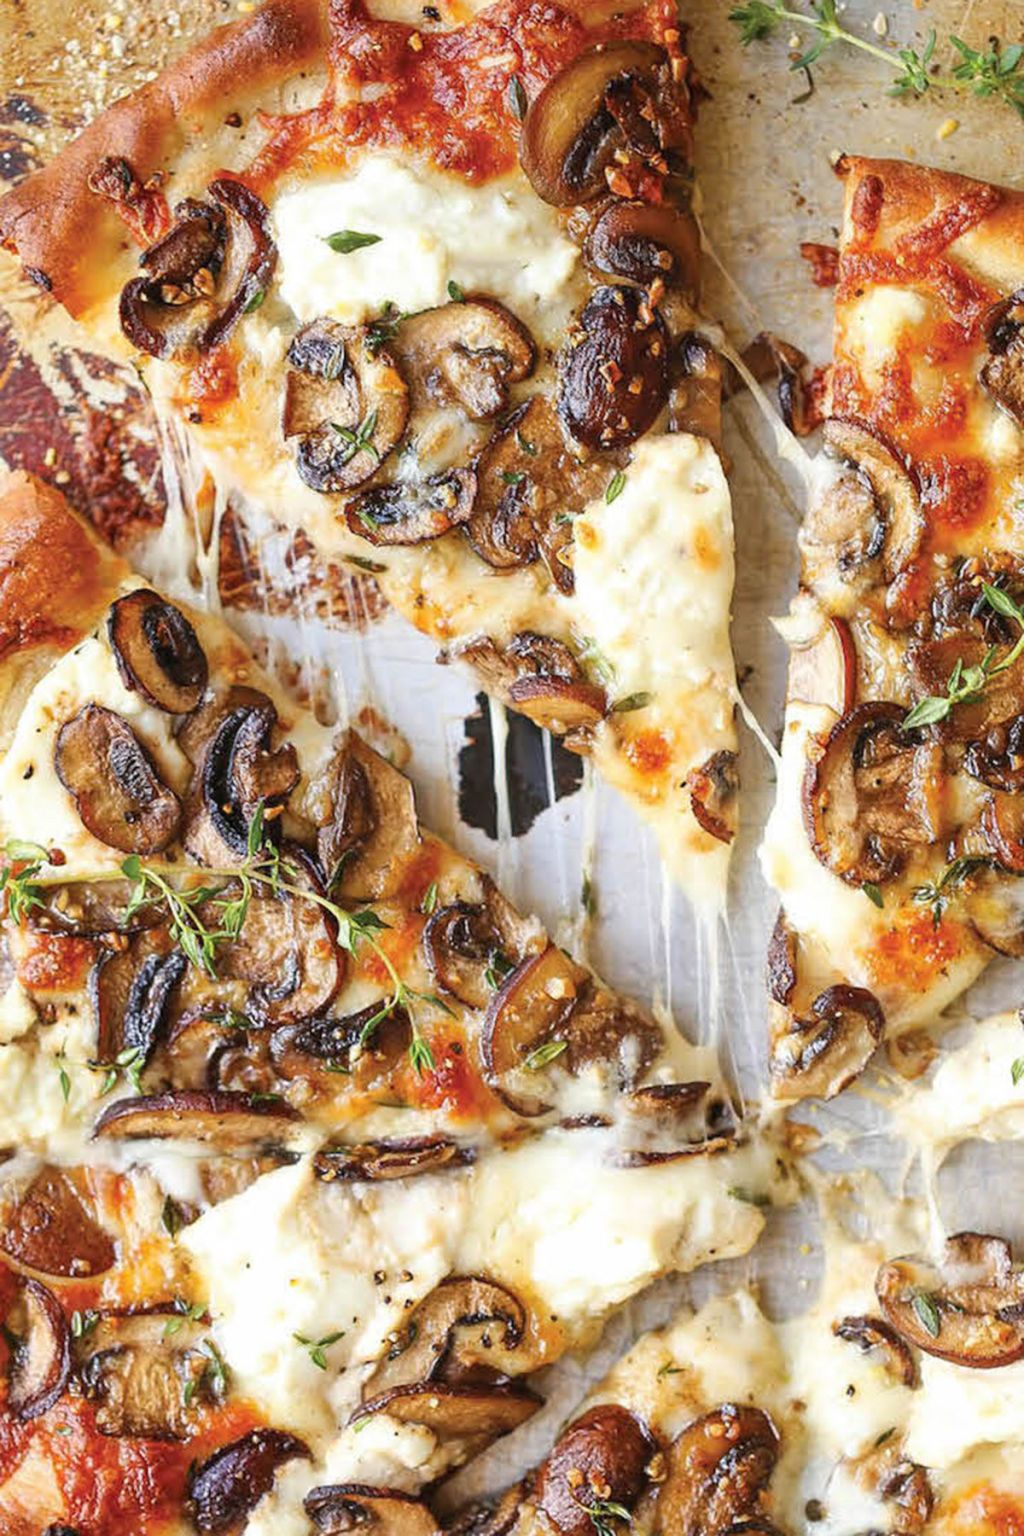 10 of the Most Delicious Meals You Can Make with Mushrooms